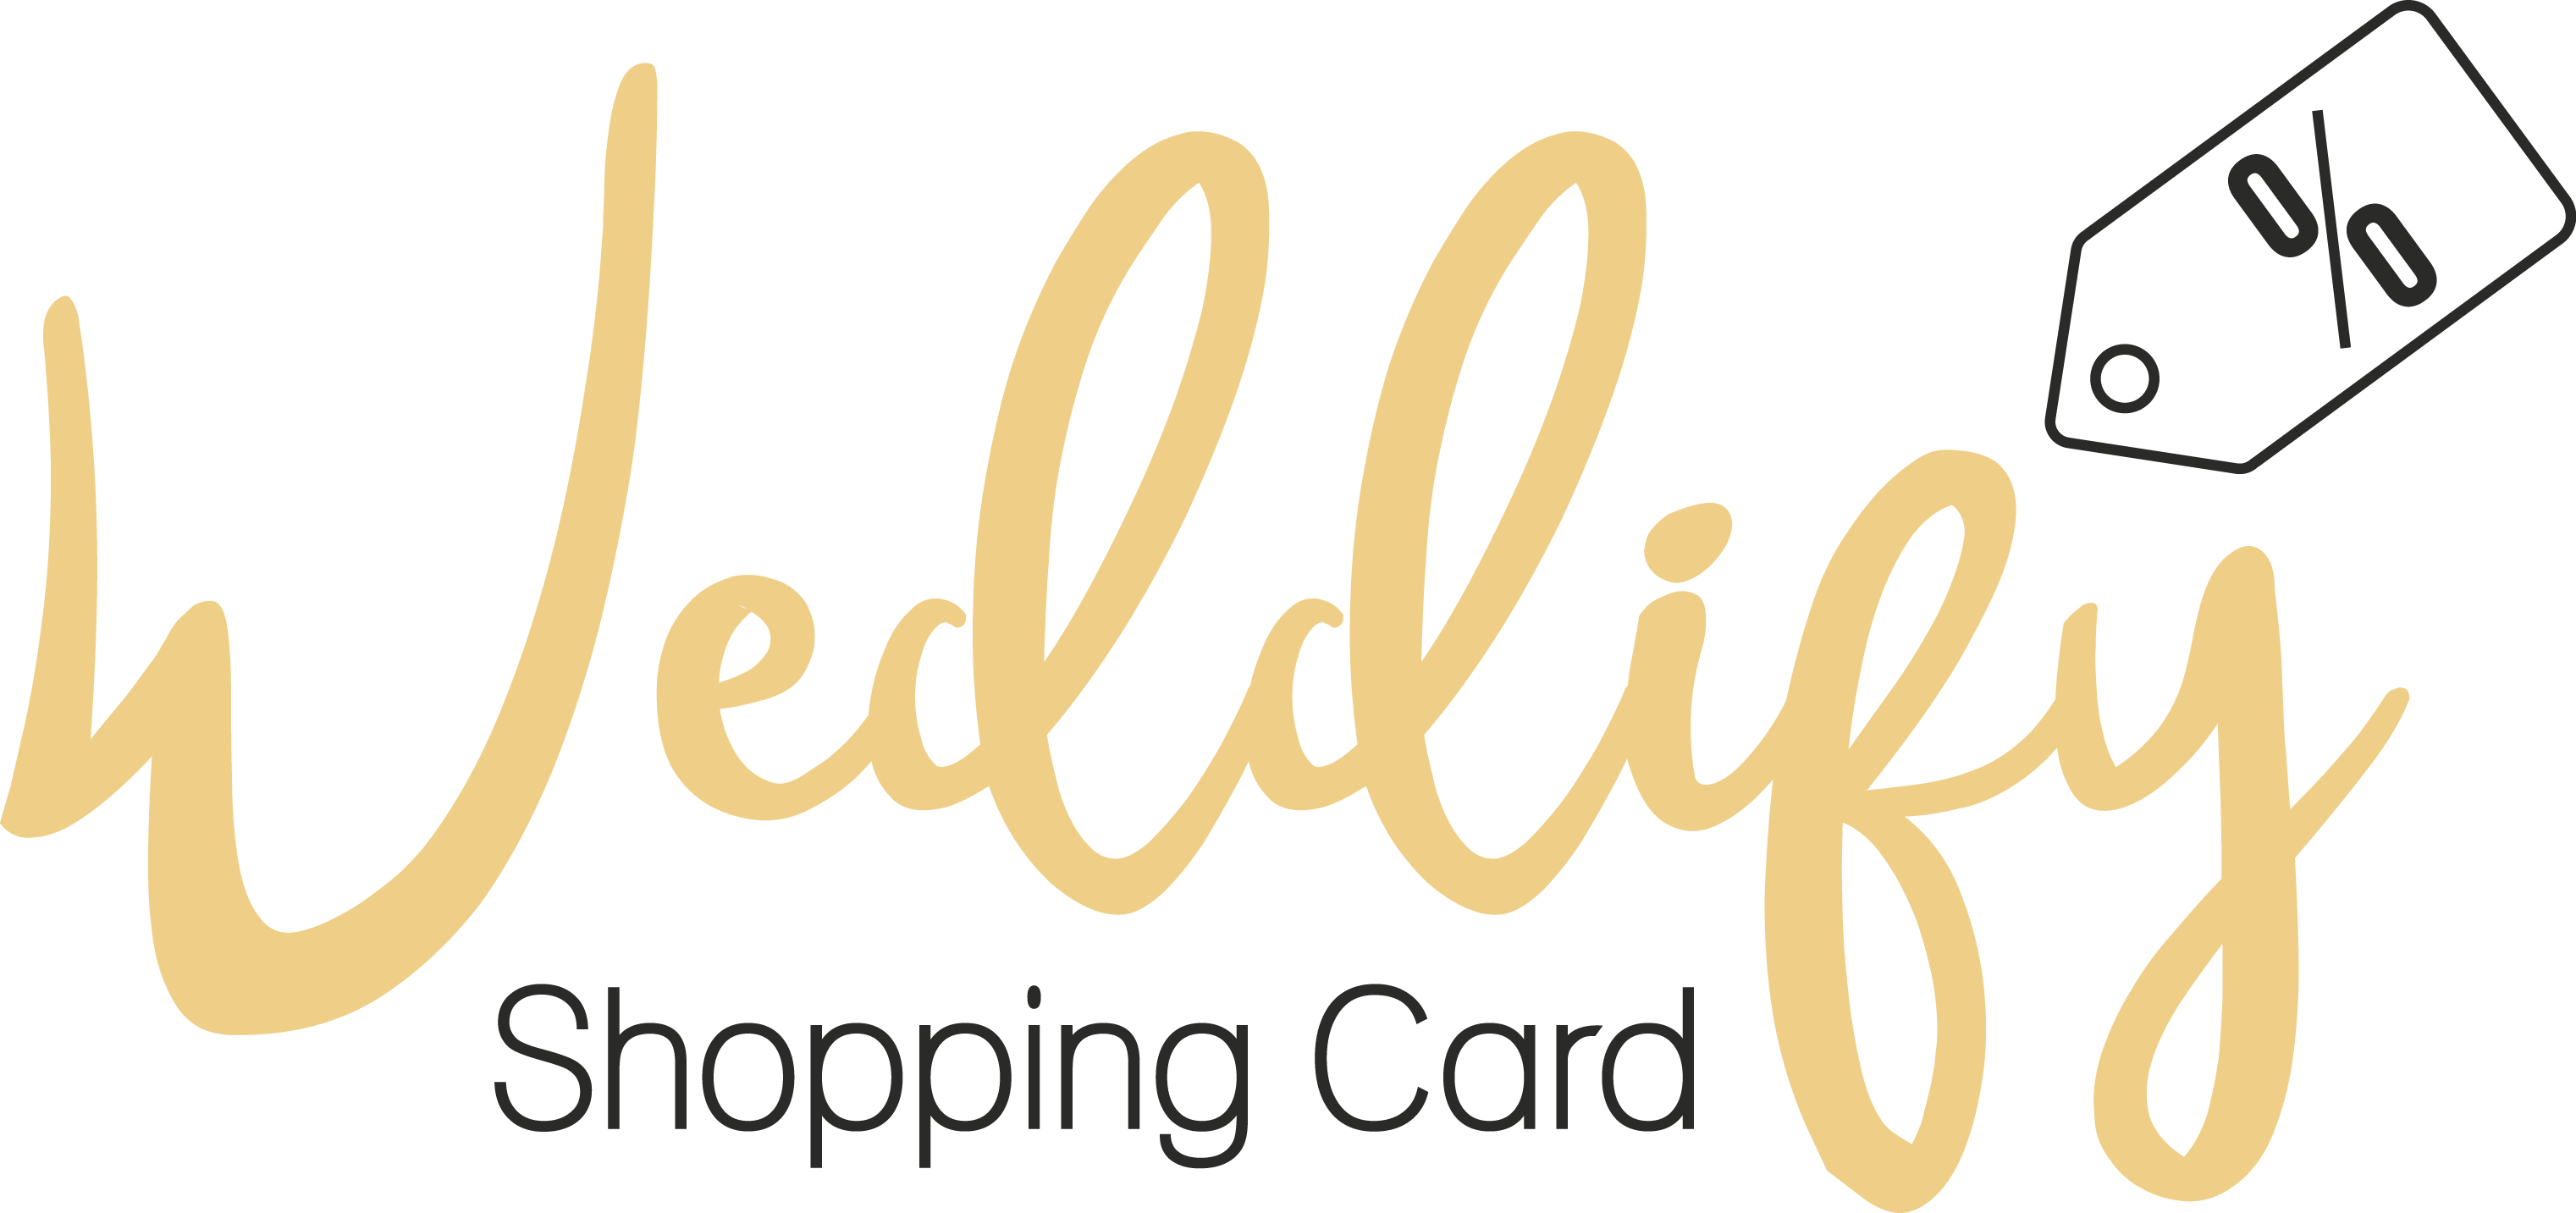 Weddify – Die Shopping Card